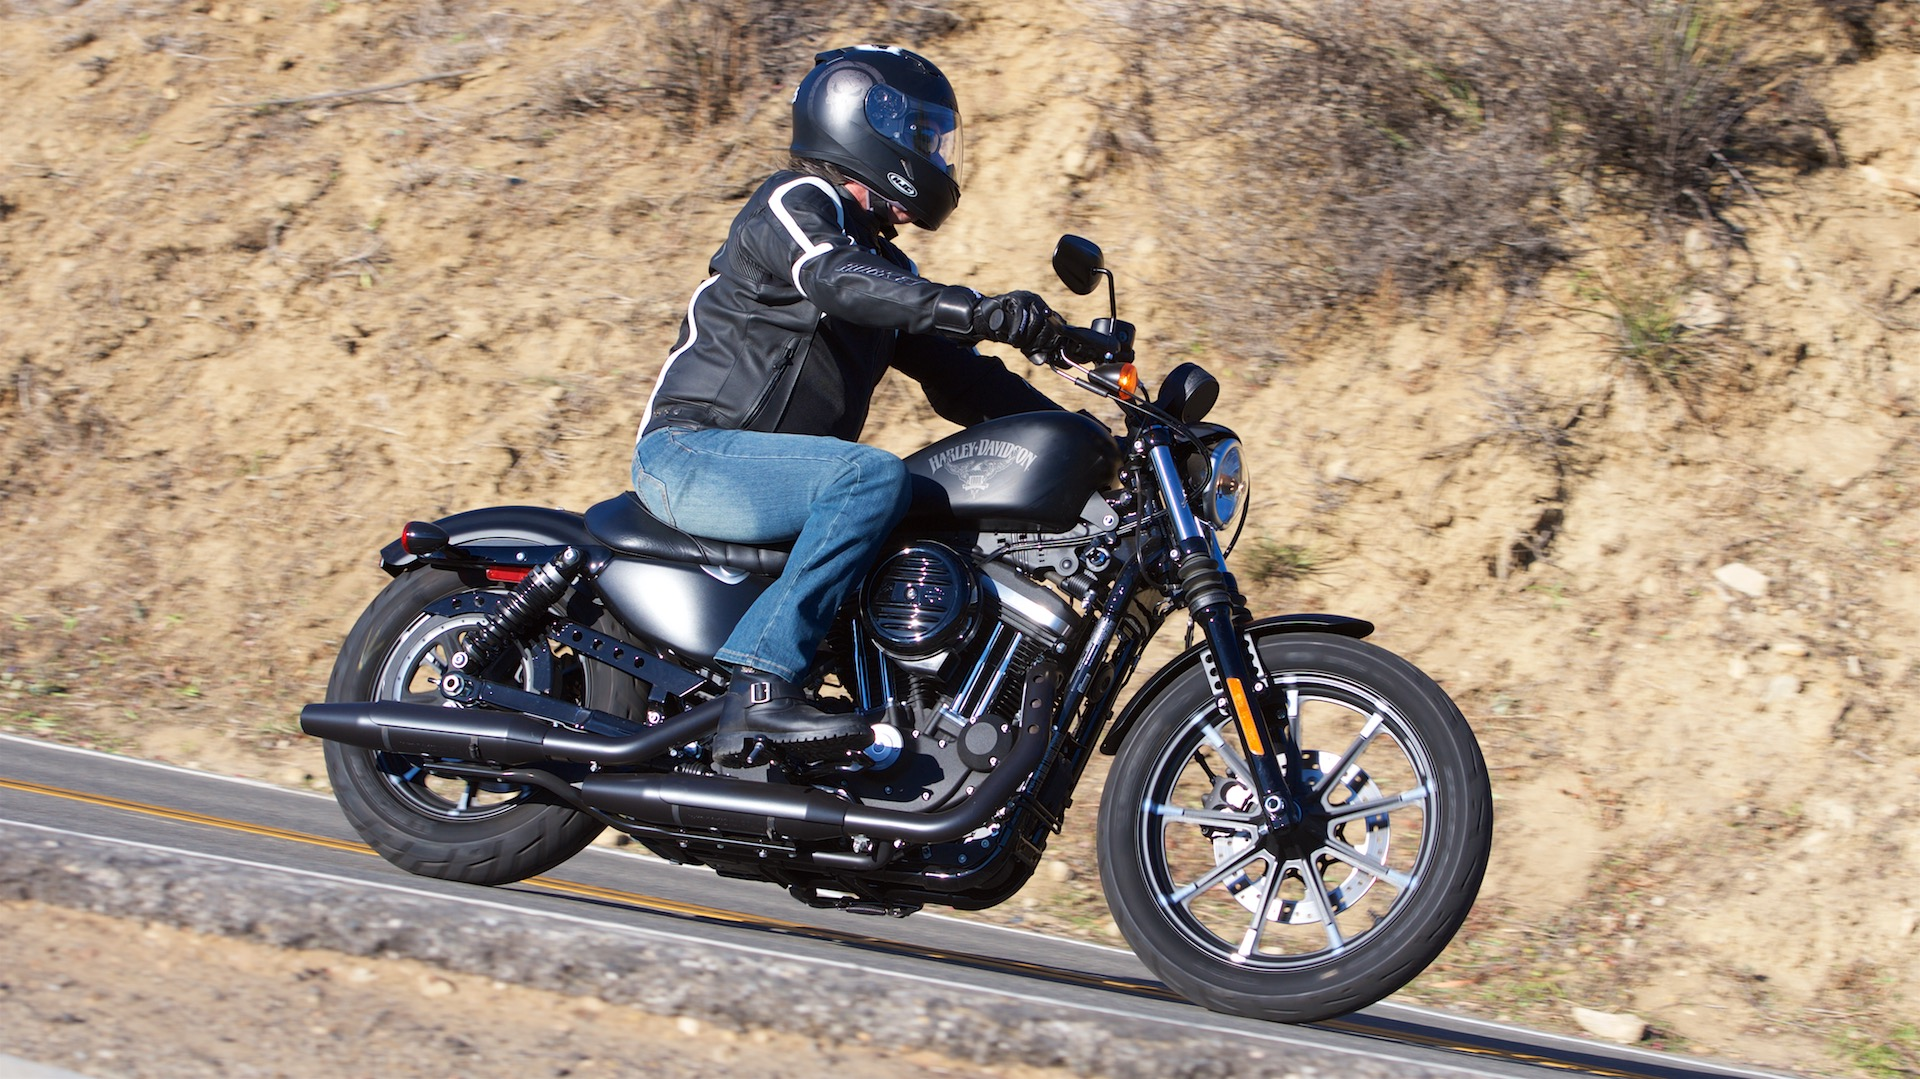 2017 Harley-Davidson Iron 883 review